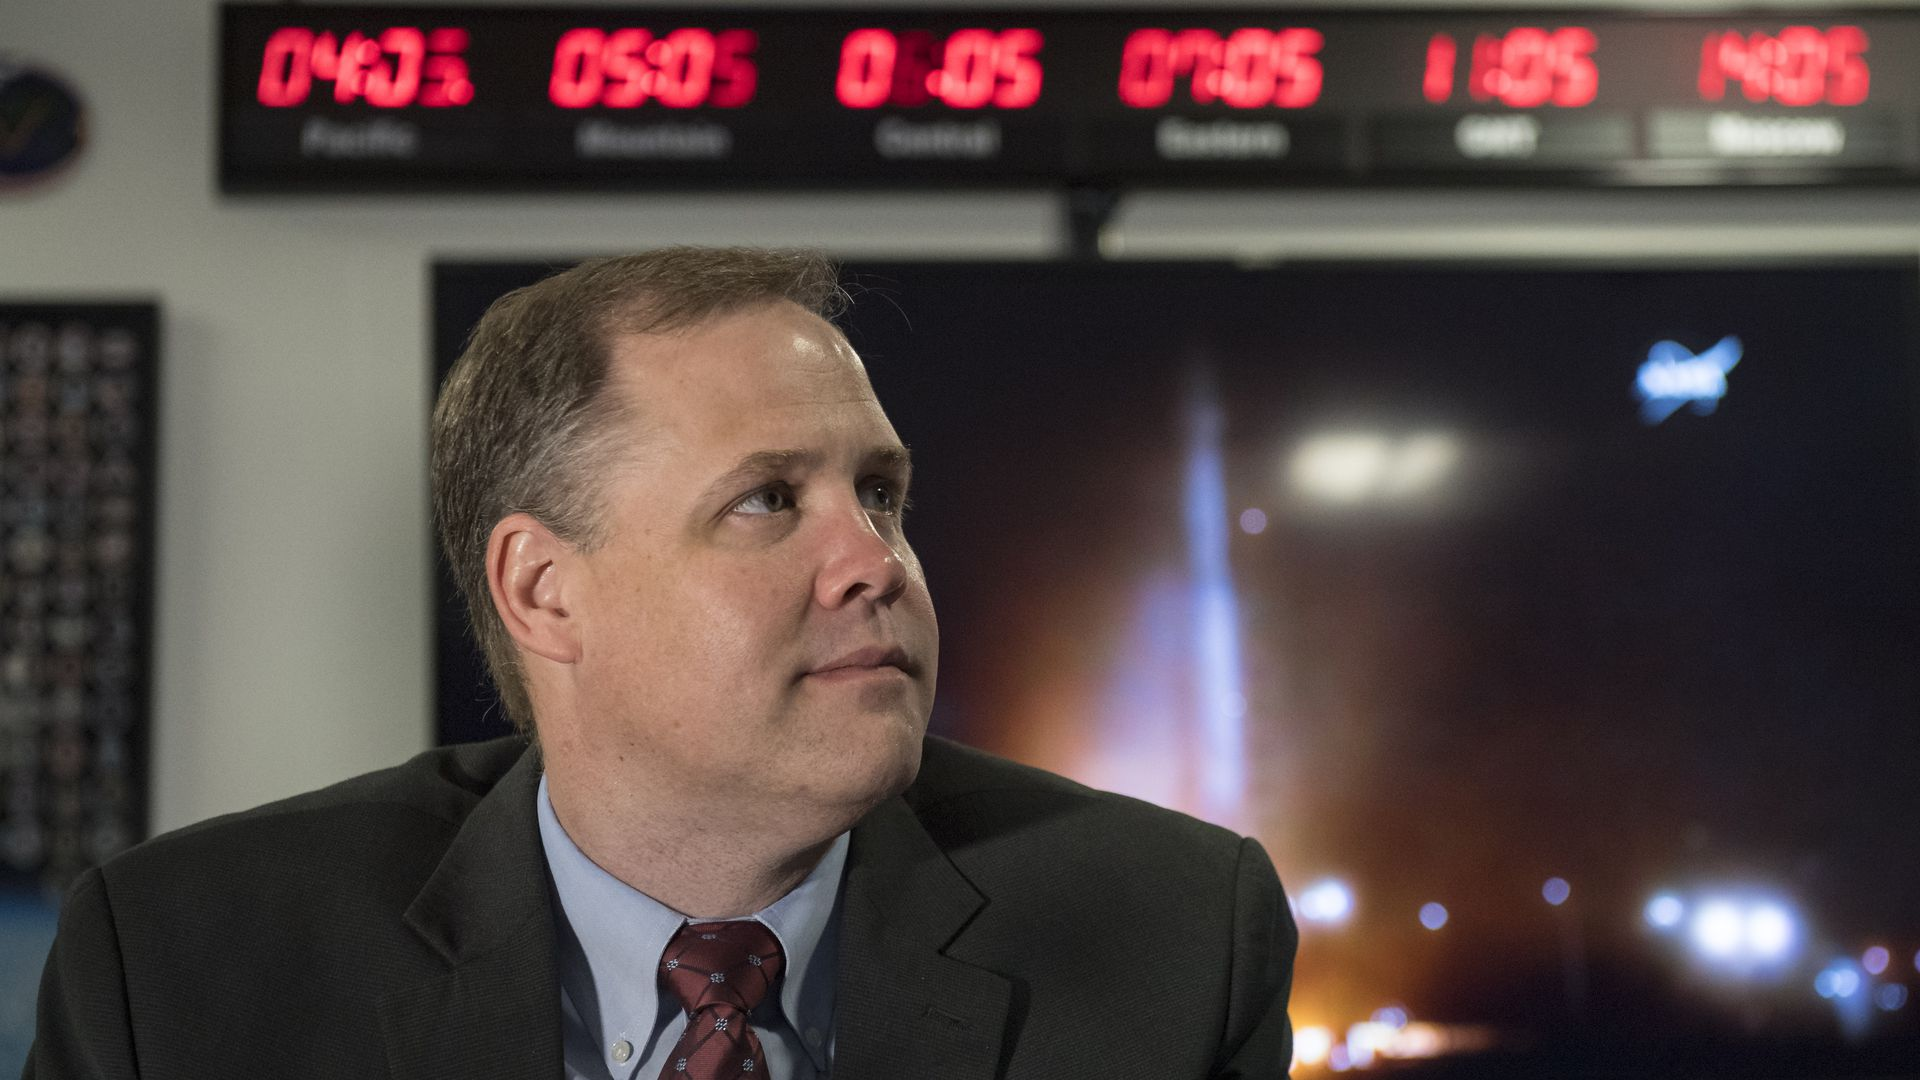 NASA administrator Jim Bridenstine seen before a rocket launch on May 5, 2018.